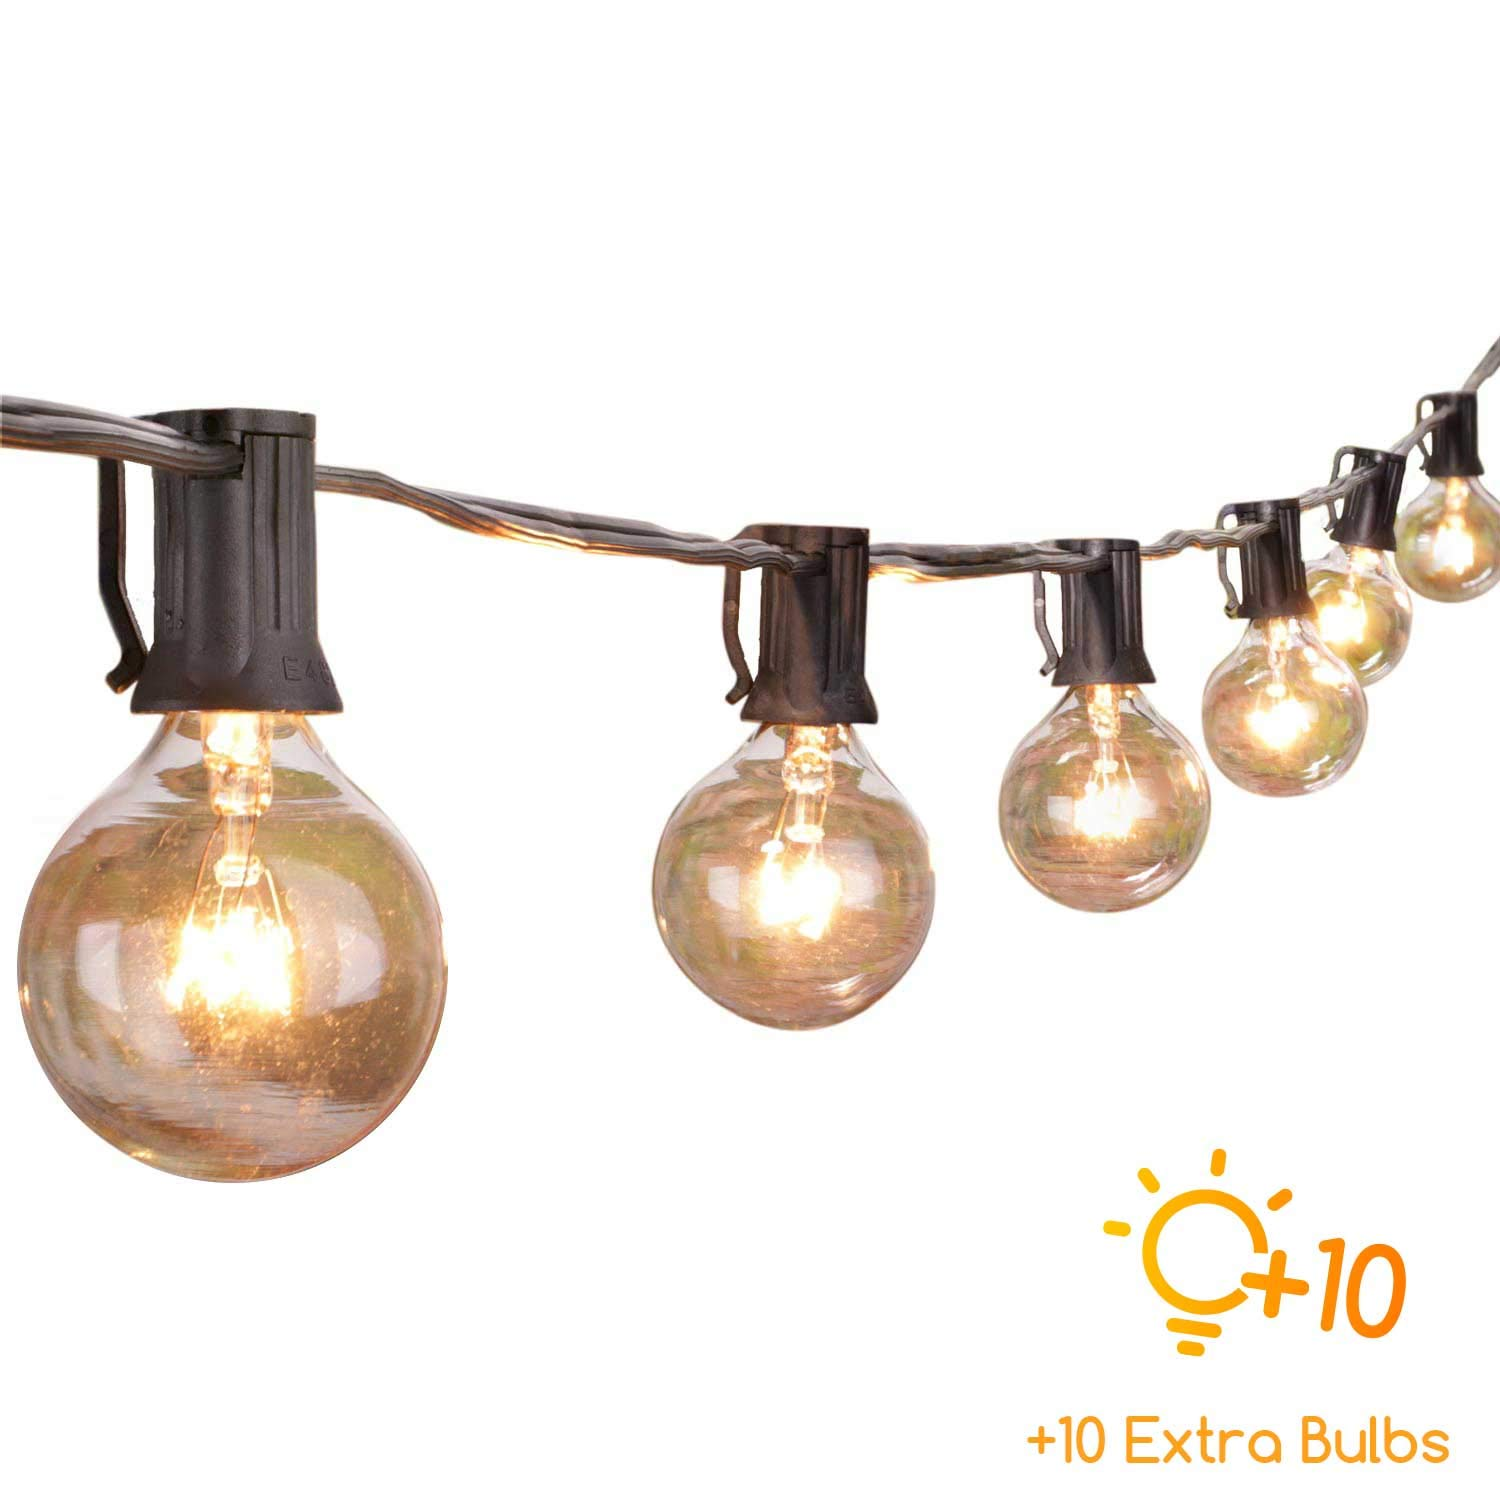 50 Ft. Globe String Lights with 60 G40 Clear Blubs (10 Extra), UL listed Indoor/Outdoor Hanging Lights for Patio Backyard Porch Deck Gazebo Garden Cafe party Decor, Black